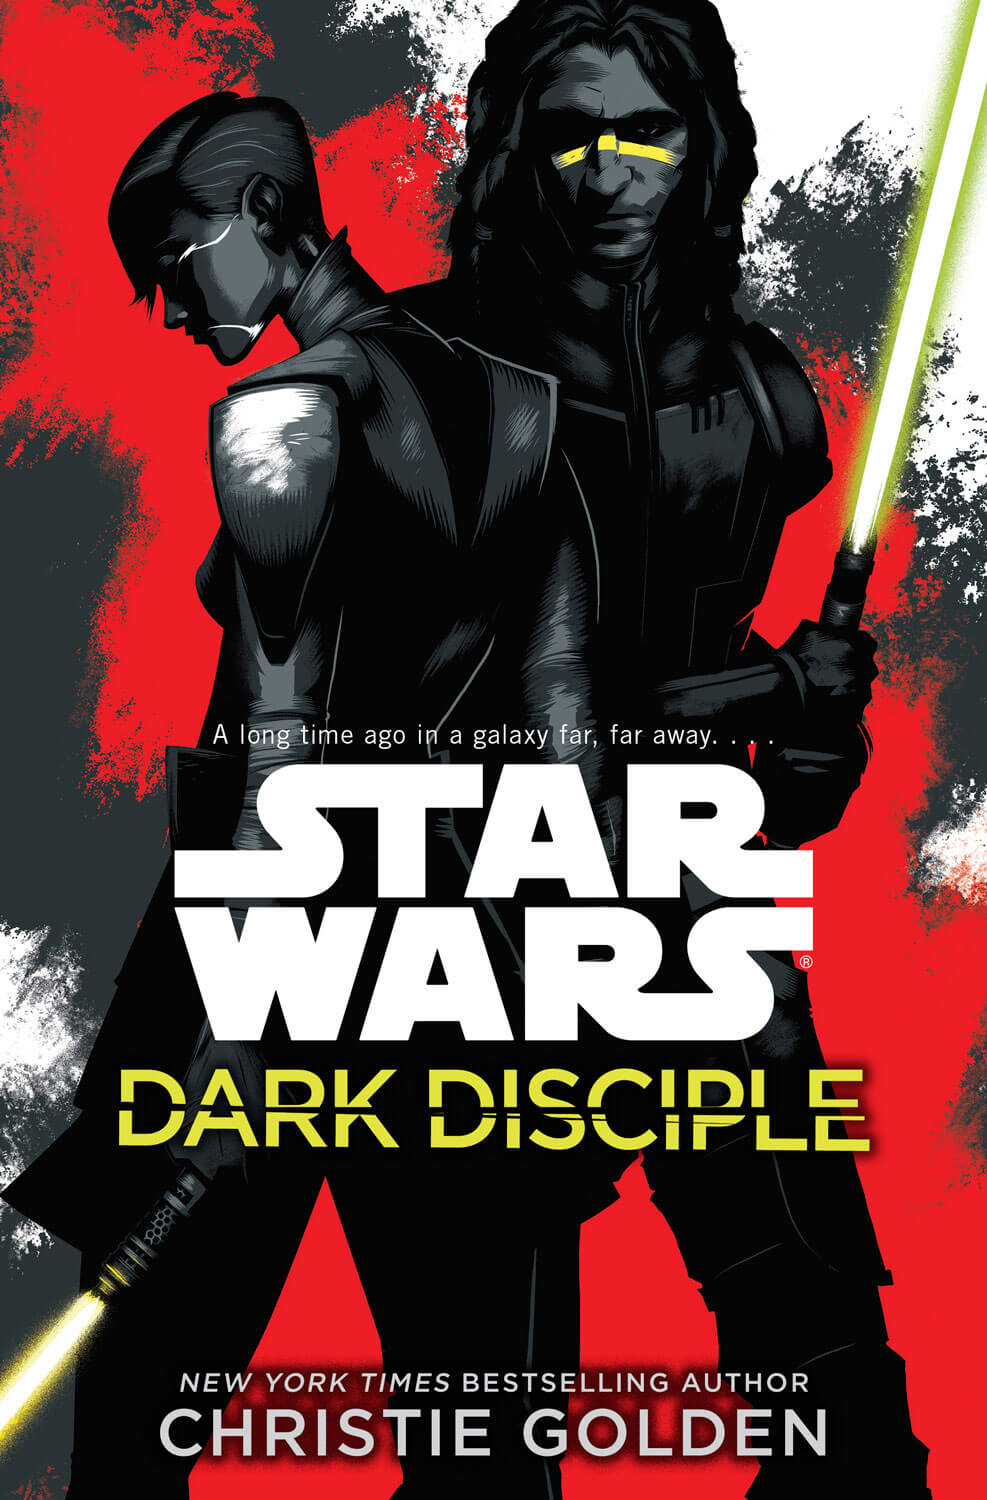 star-wars-dark-disciple-cover-book